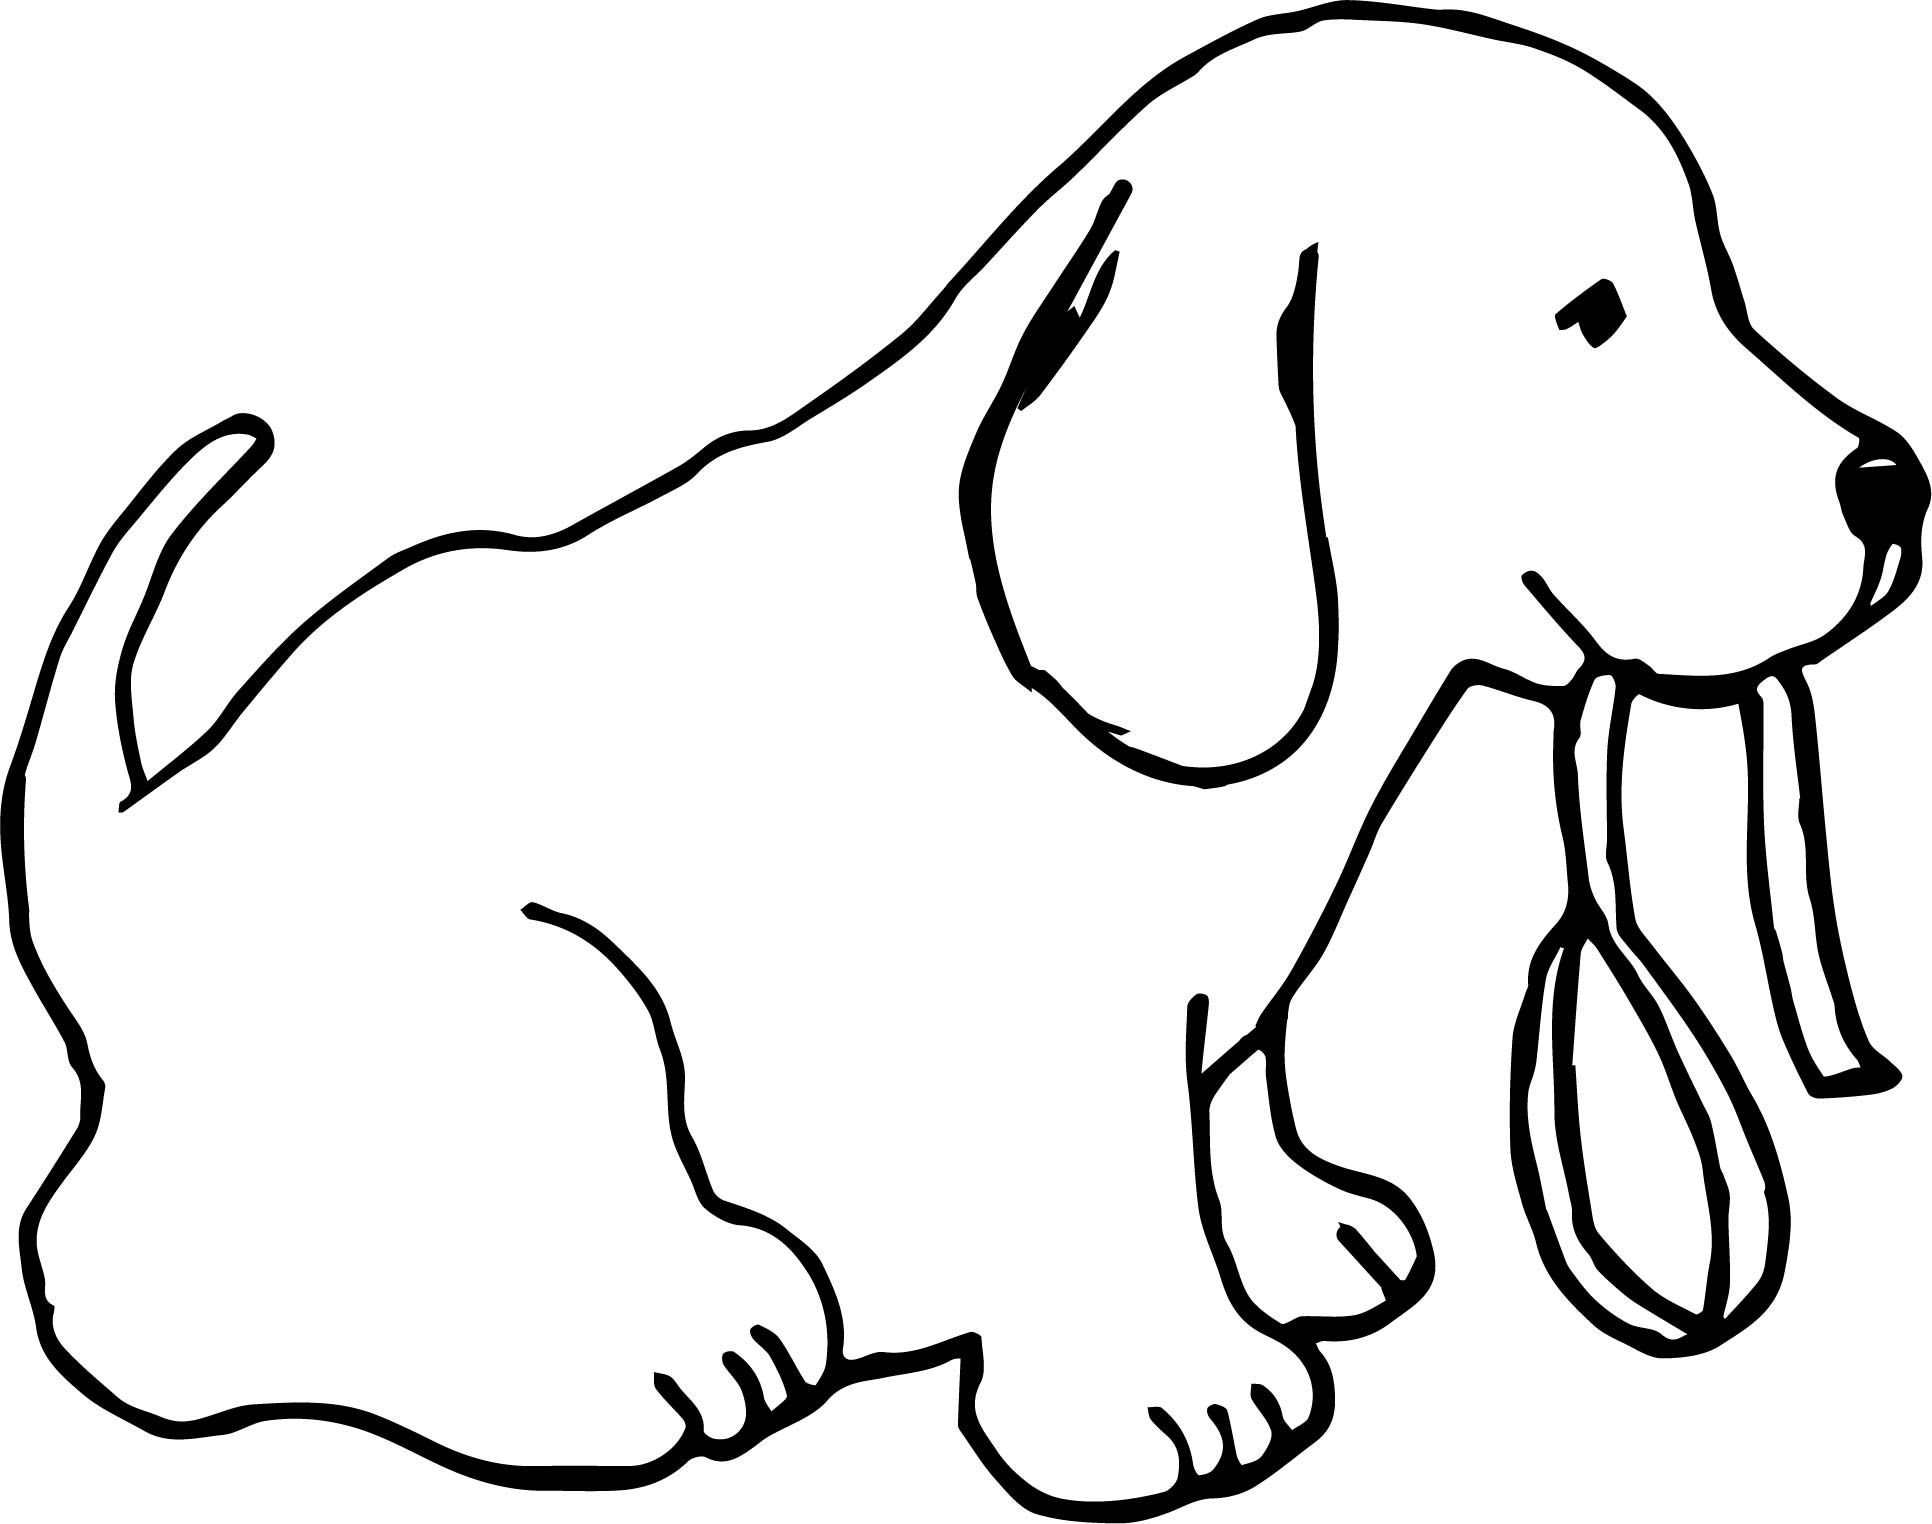 Funny Dogs Cute Dog With Leash Color Puppy Dog Coloring Page Https